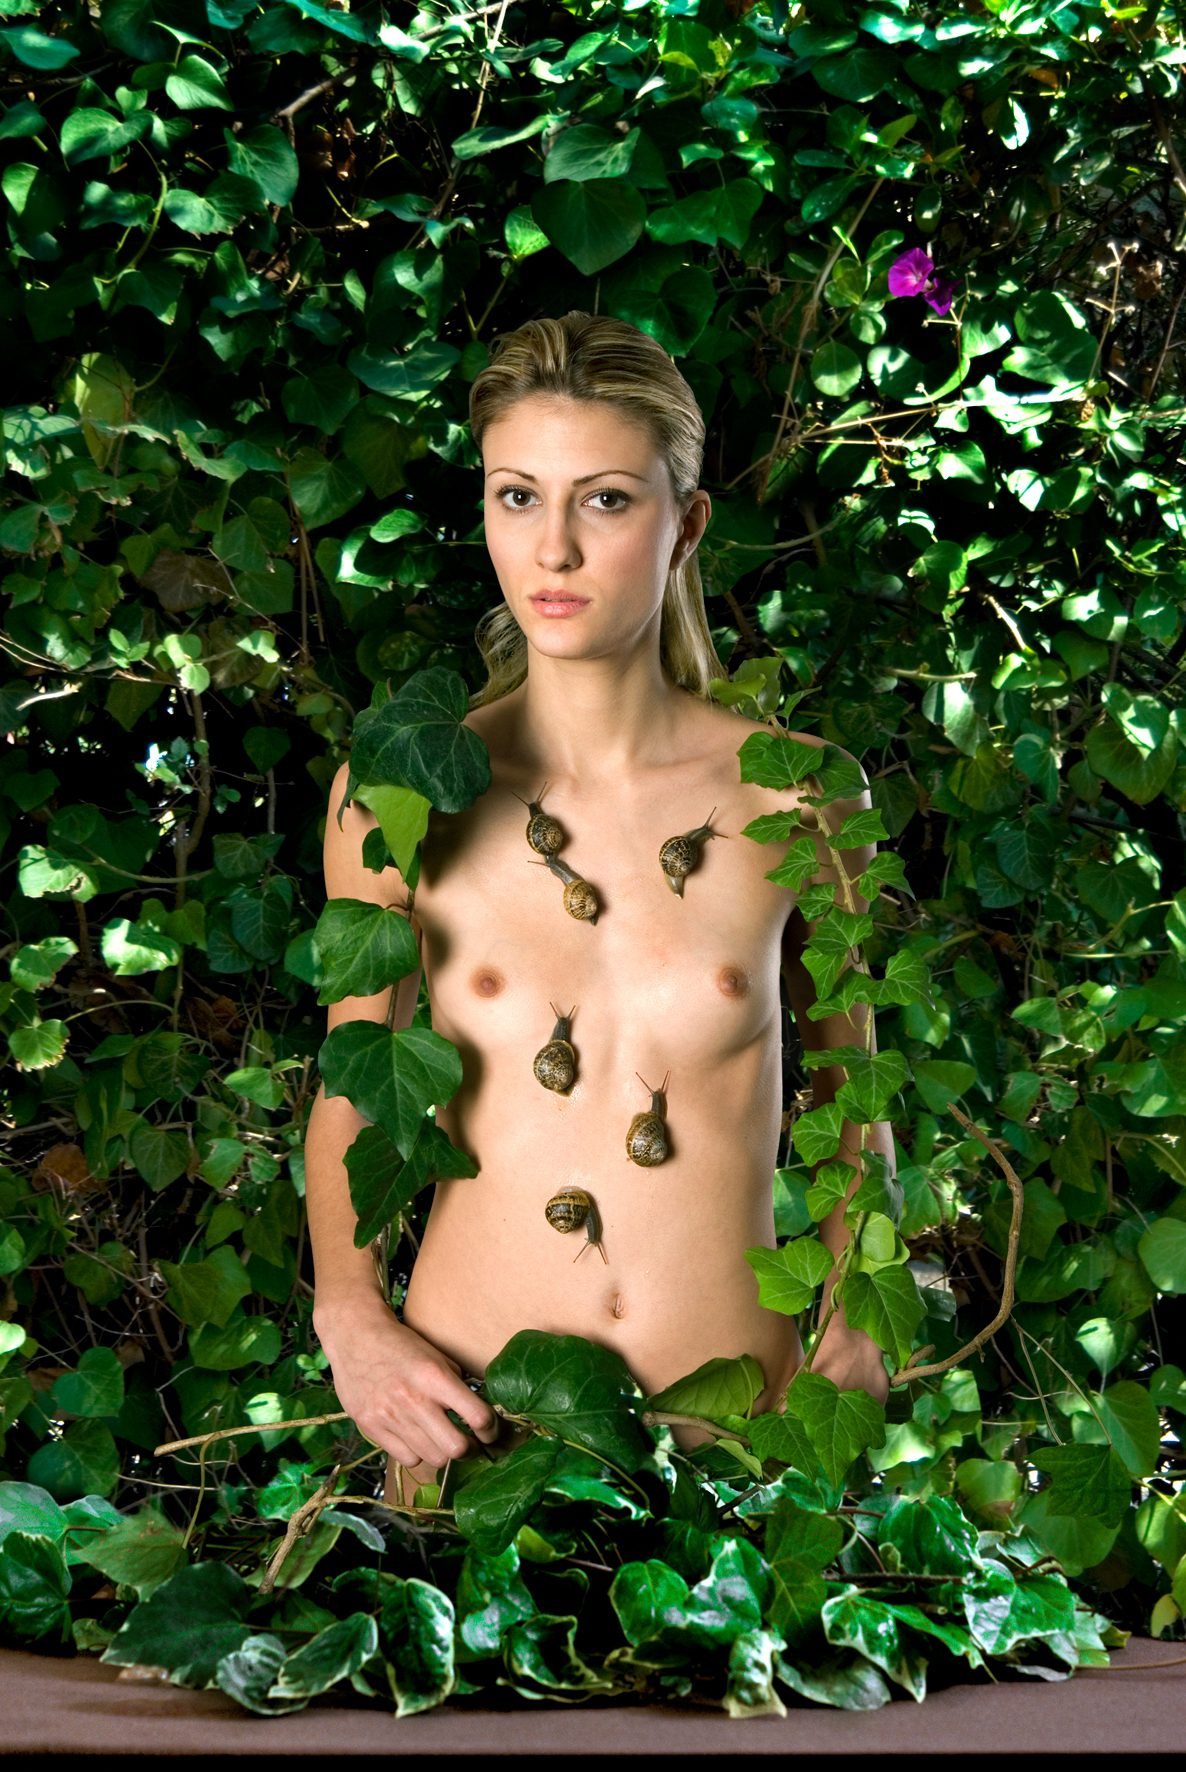 Untitled, For a Definition of The Nude Series (Woman w/ Snails)